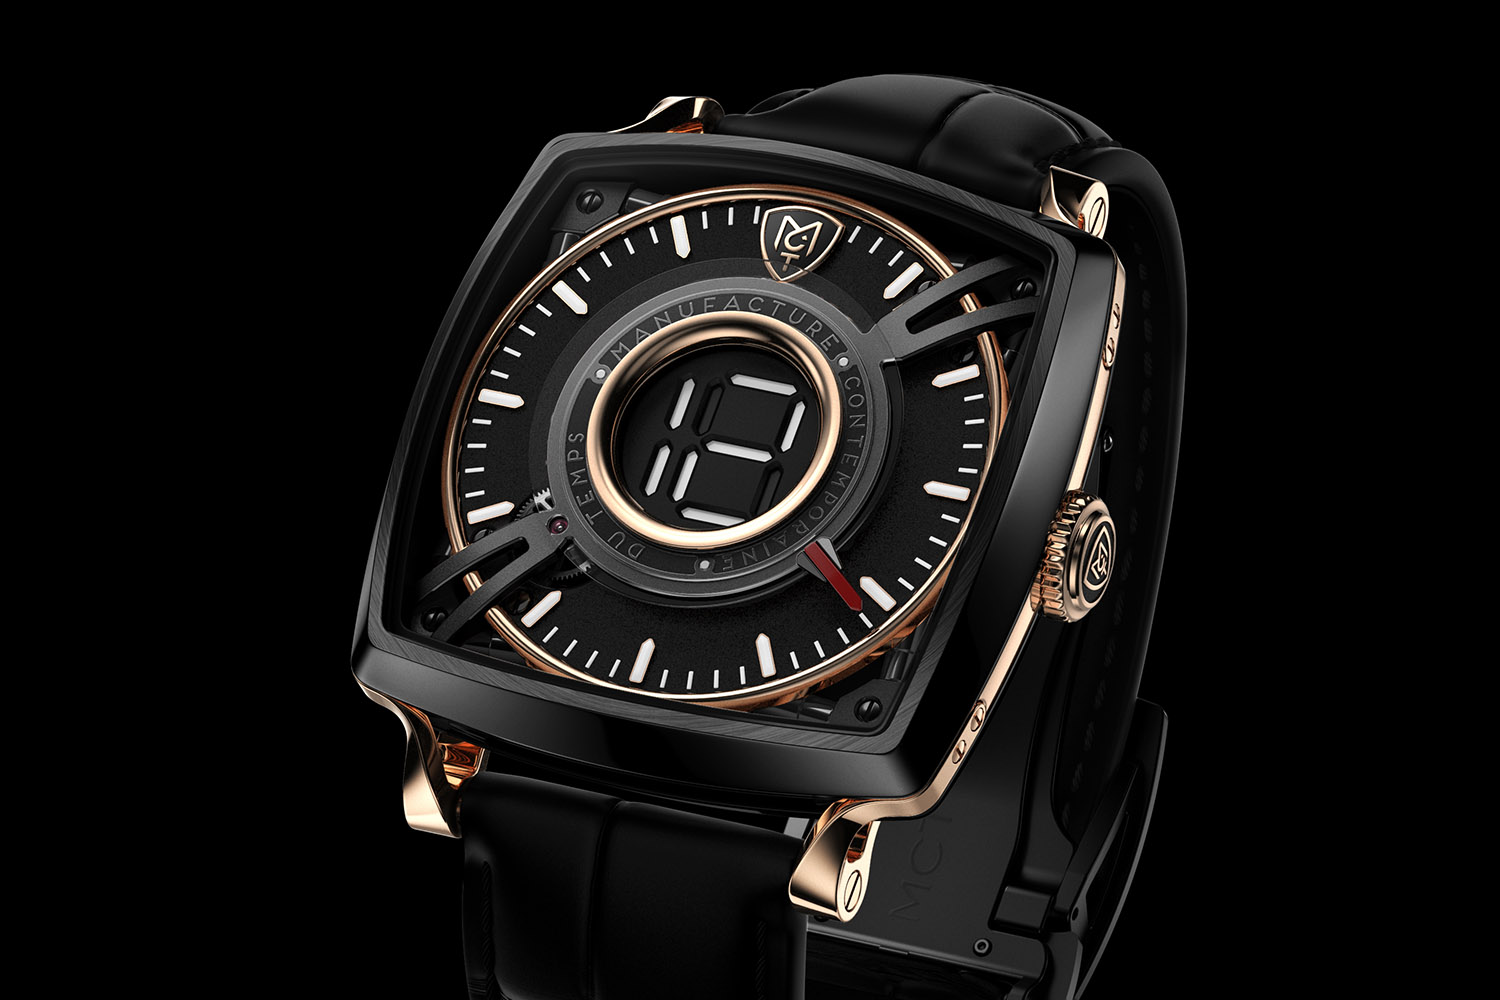 MCT Dodekal One D110 - Baselworld 2017